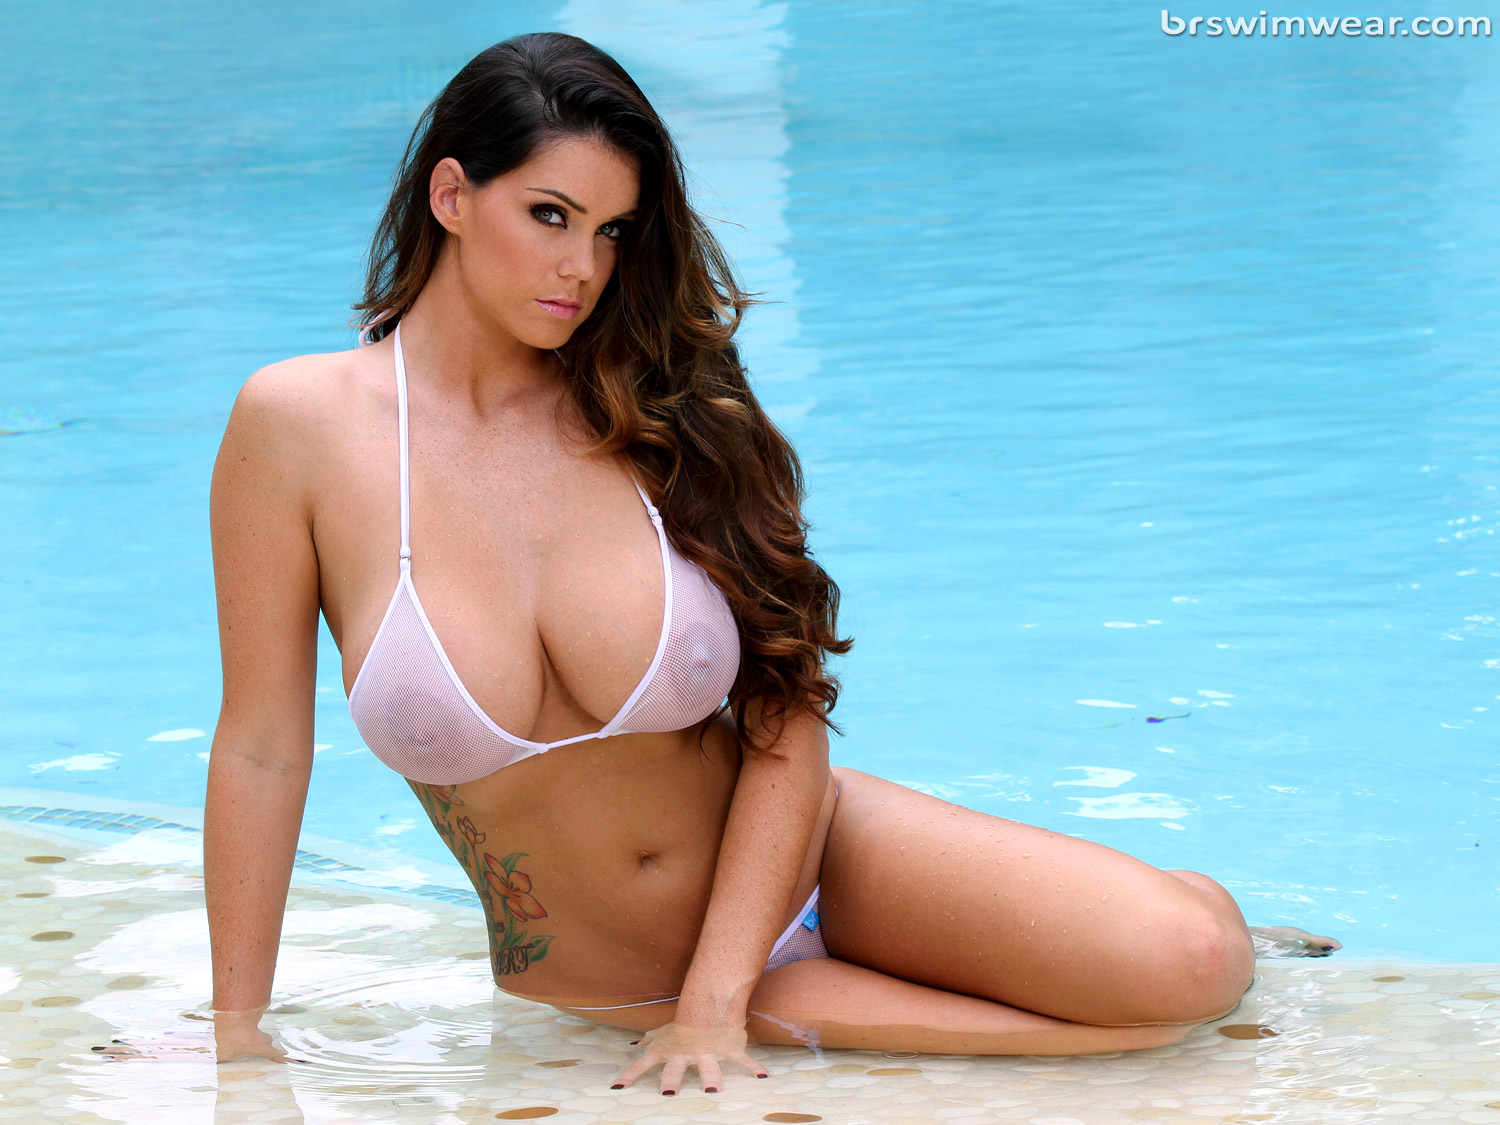 Sorry, that Gorgeous bikini supermodels with